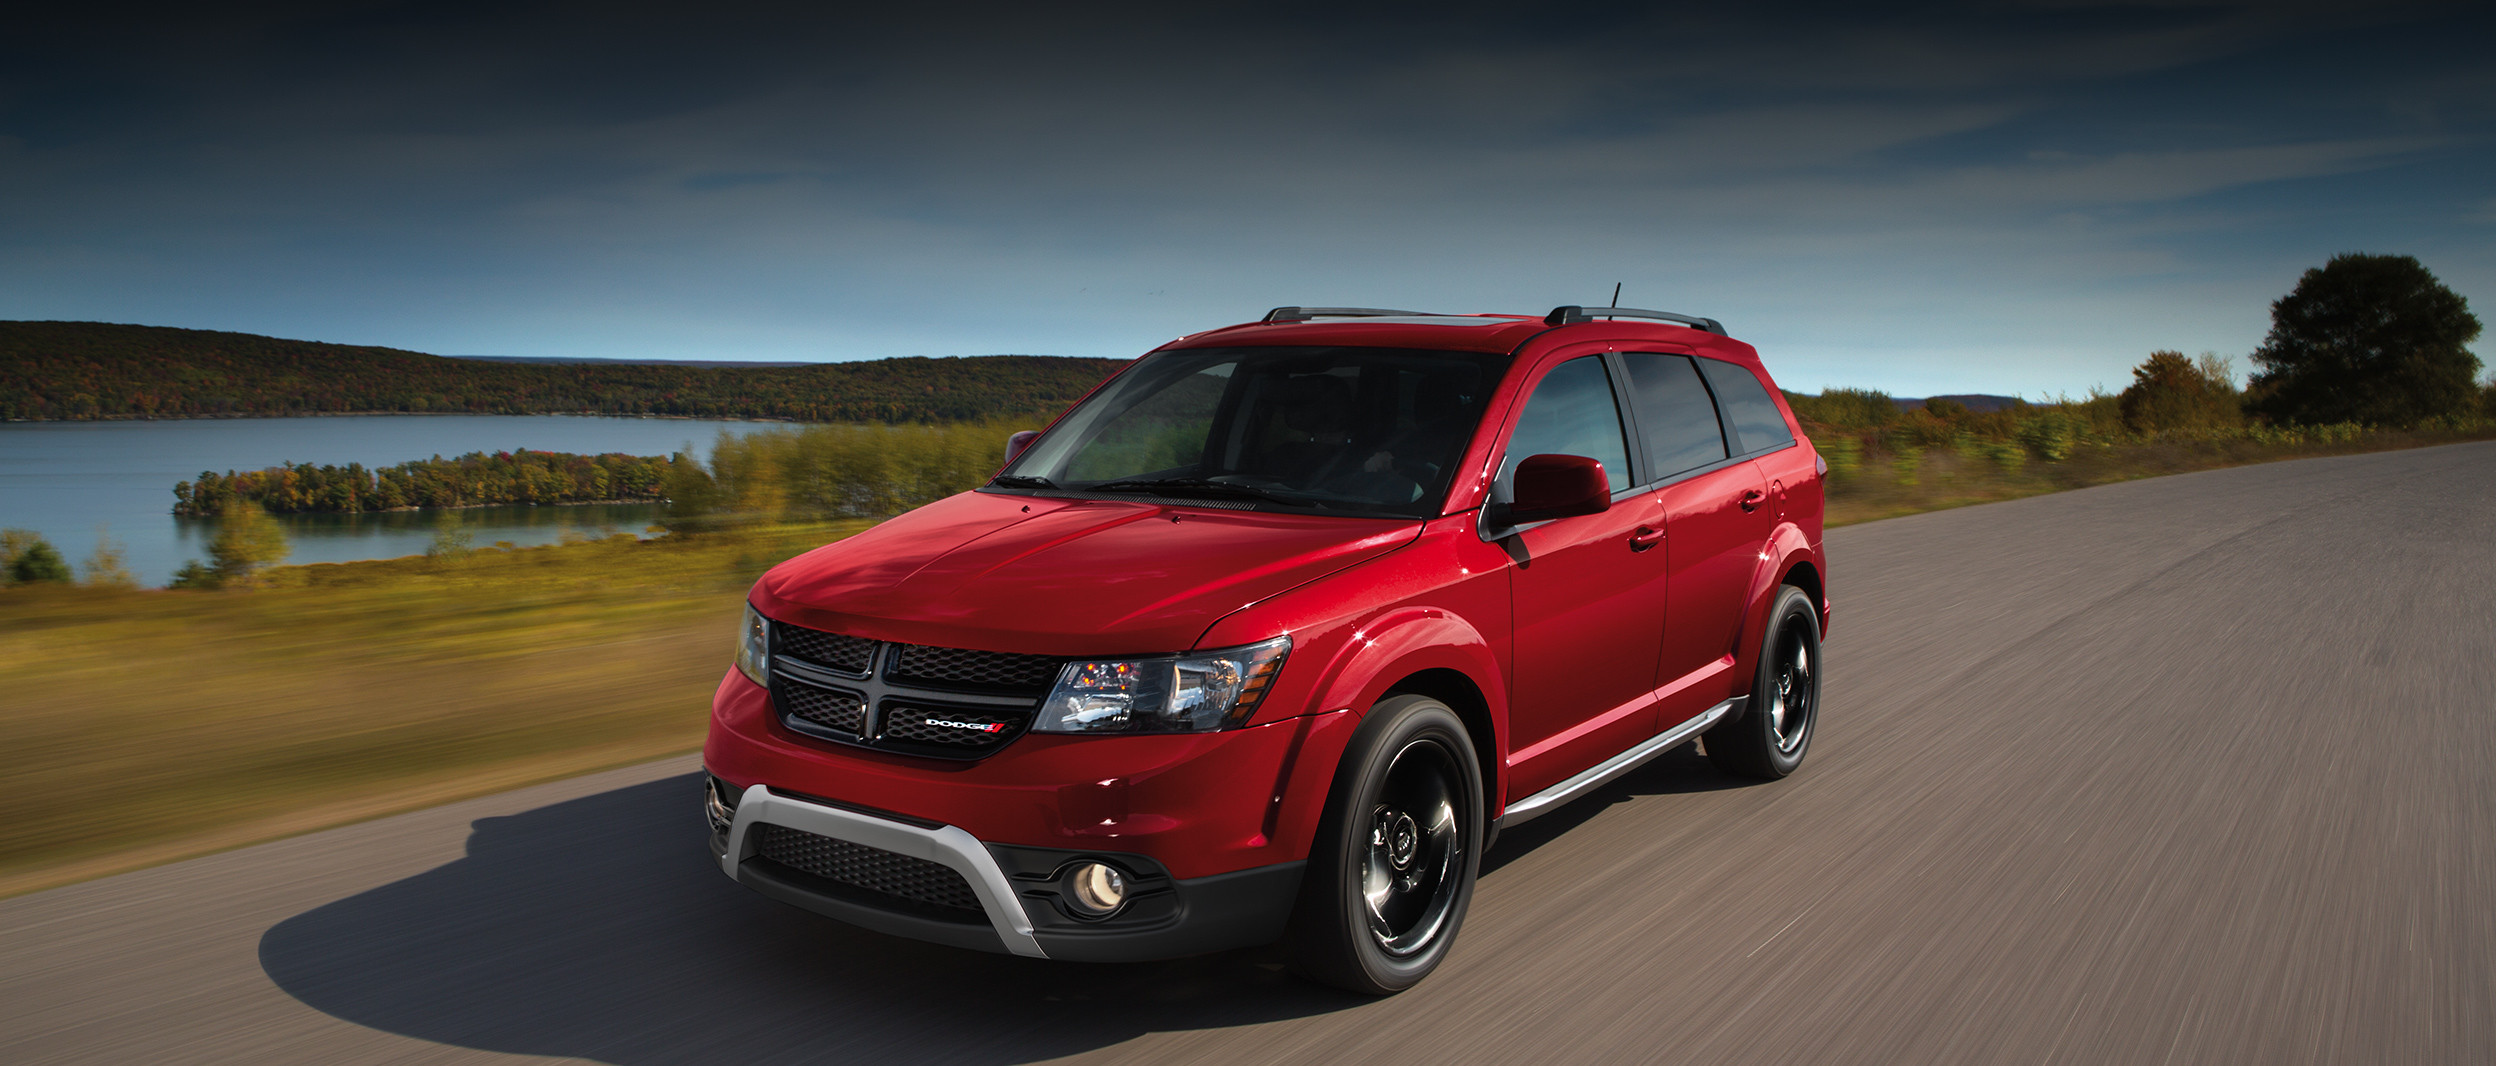 Front view of the grey 2020 Dodge Journey Crossroad driving on a road